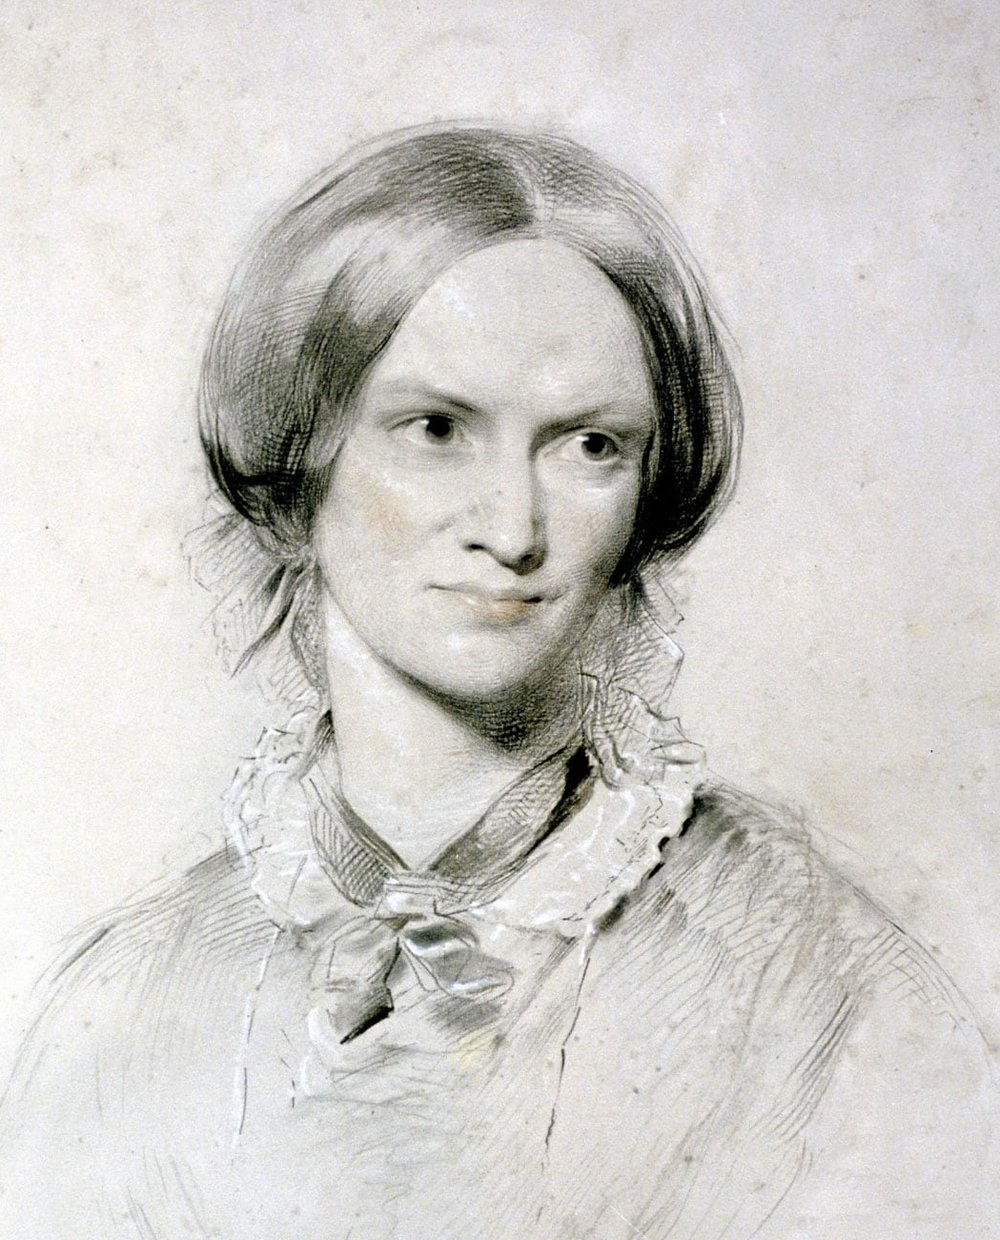 Portrait by George Richmond  (1850, chalk on paper)